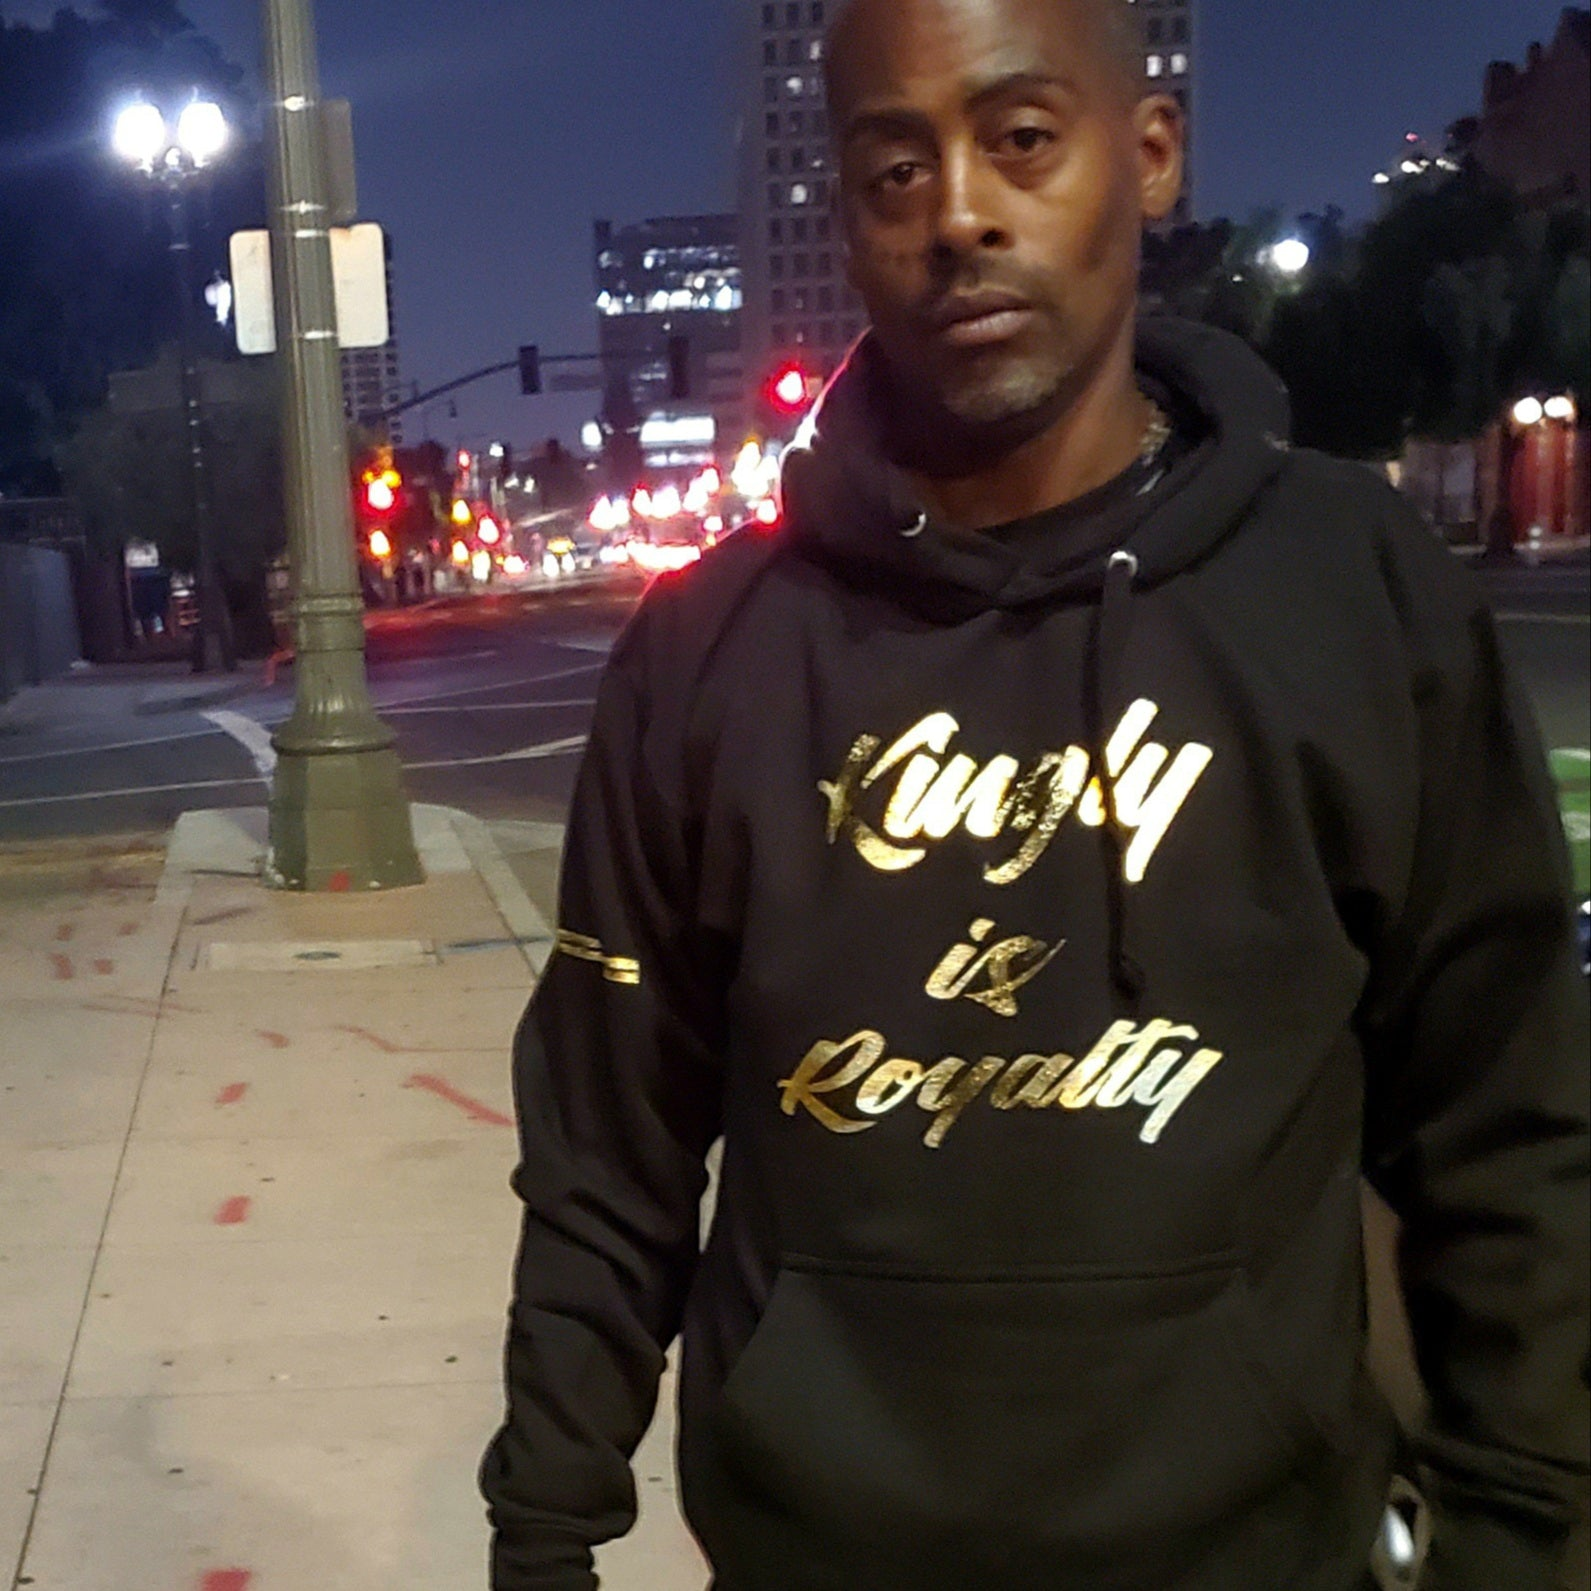 KINGLY X PSA Collabo Hoodie - Kingly Is Royalty/Queenly Is Royalty